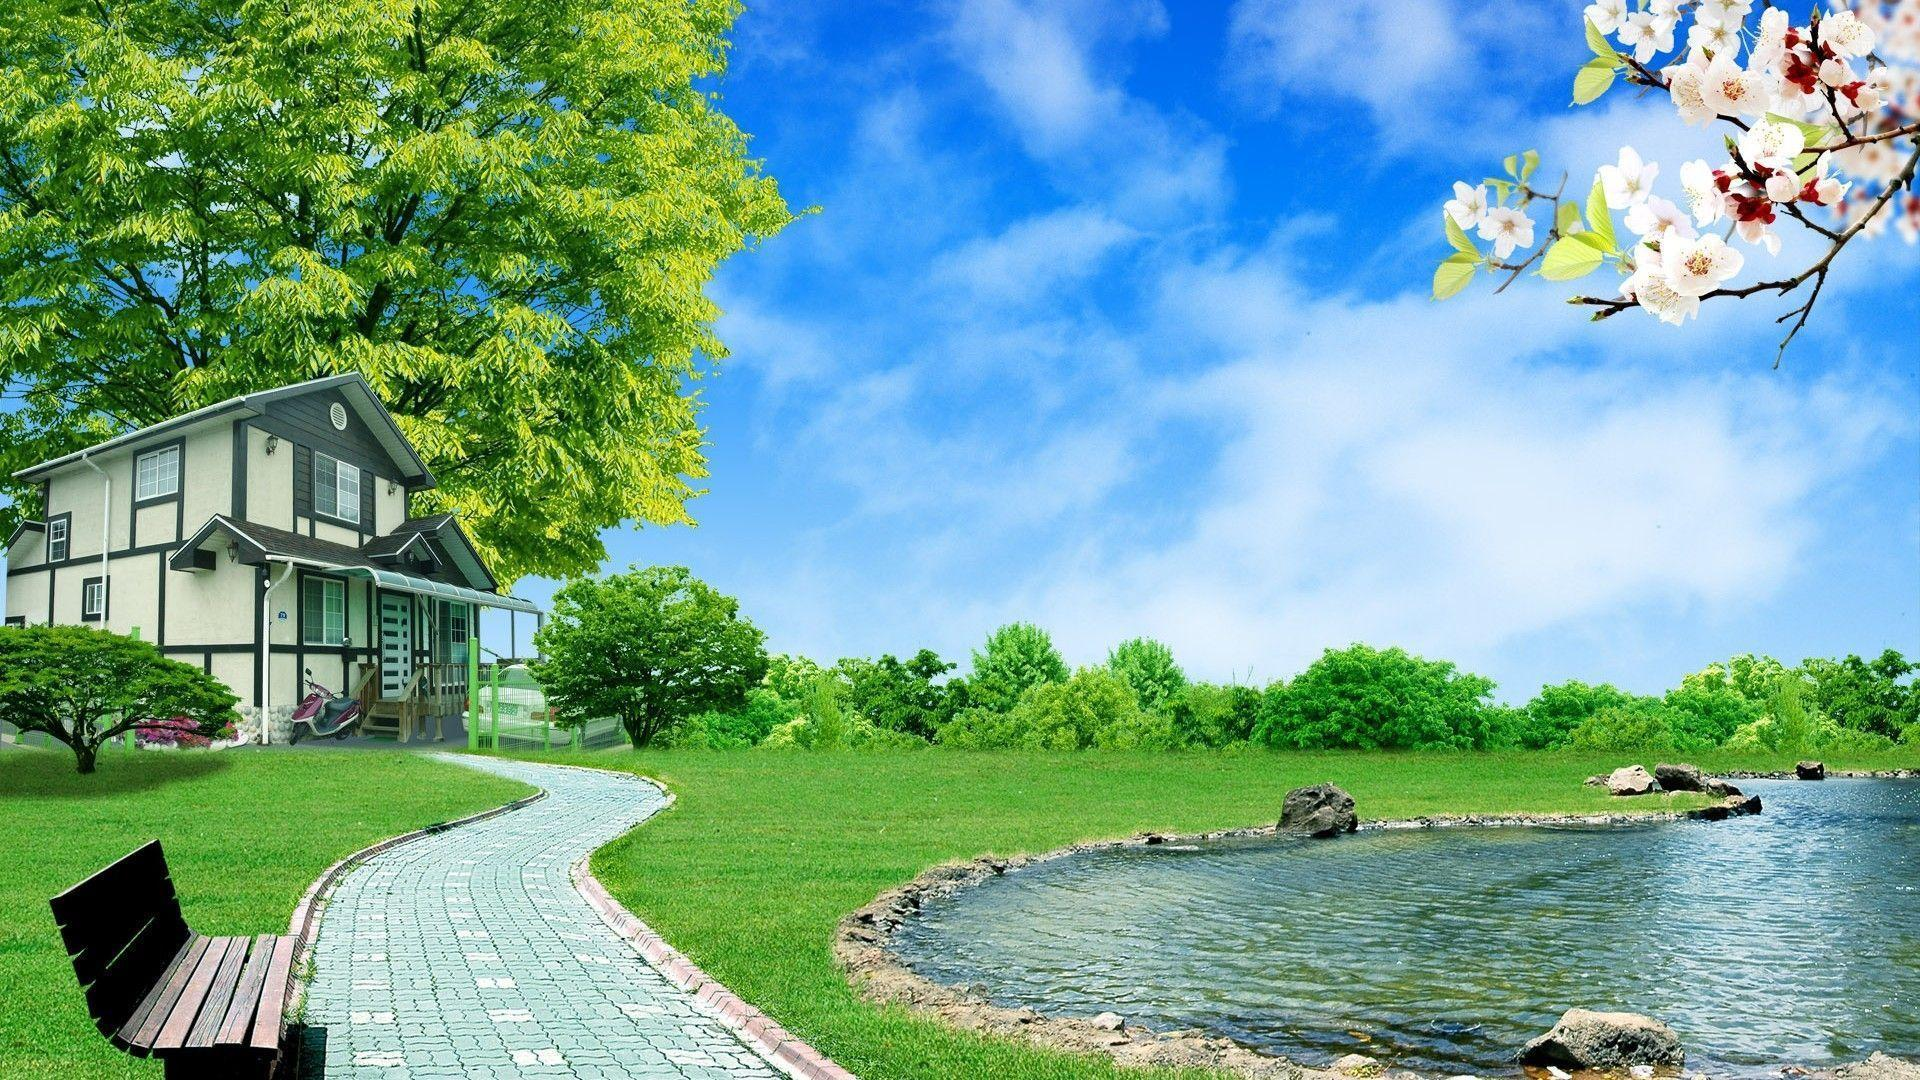 3D Nature Wallpaper For Walls Widescreen 2 HD Wallpapers | Eakai.